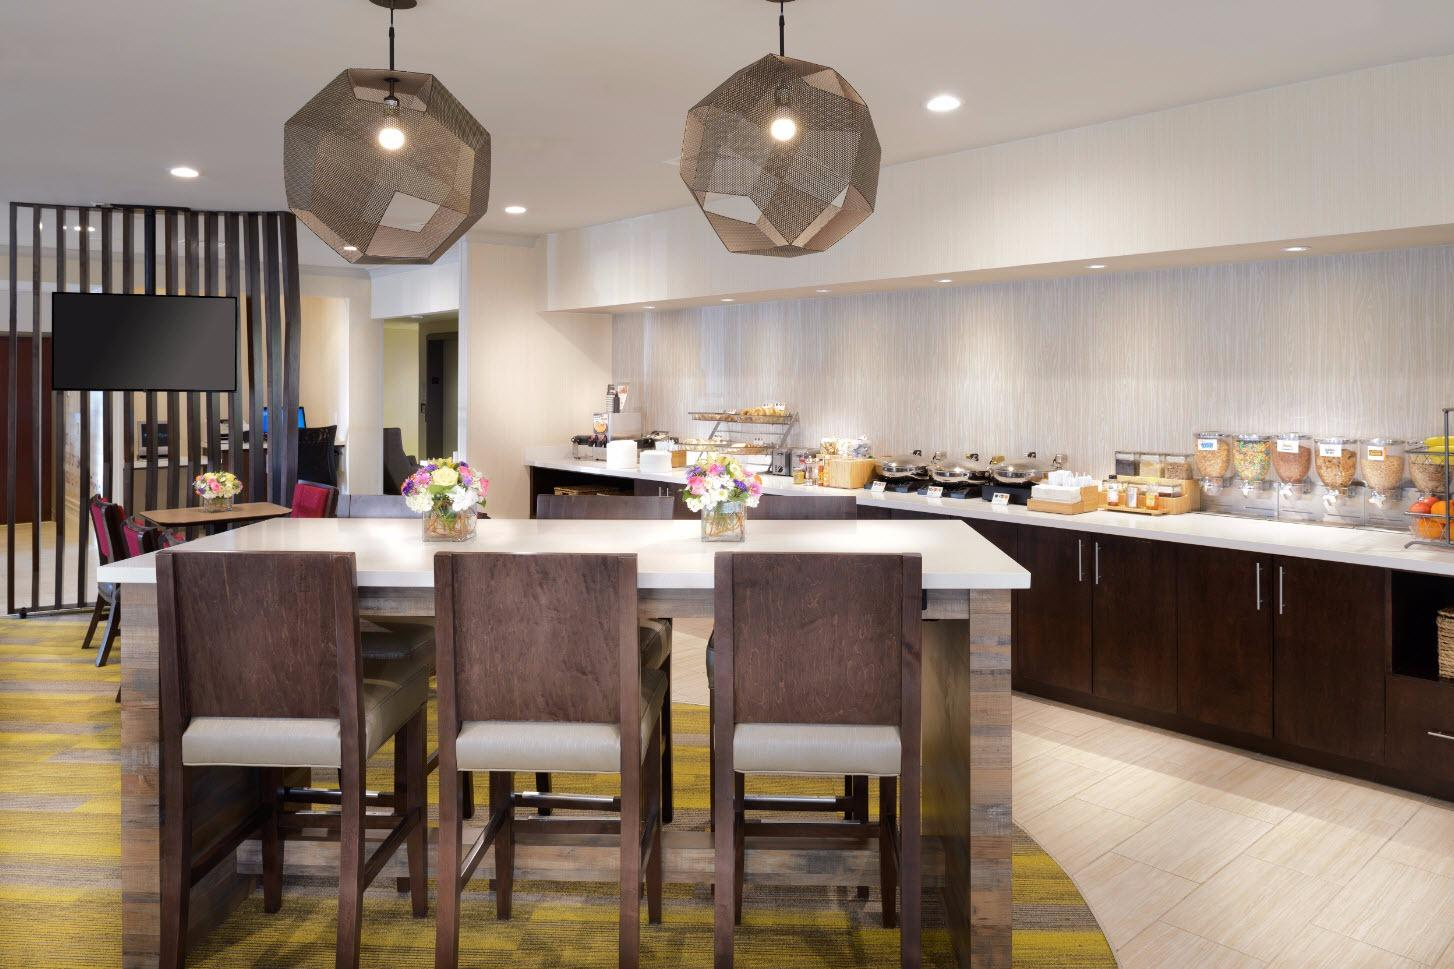 SpringHill Suites by Marriott St. Louis Chesterfield image 8